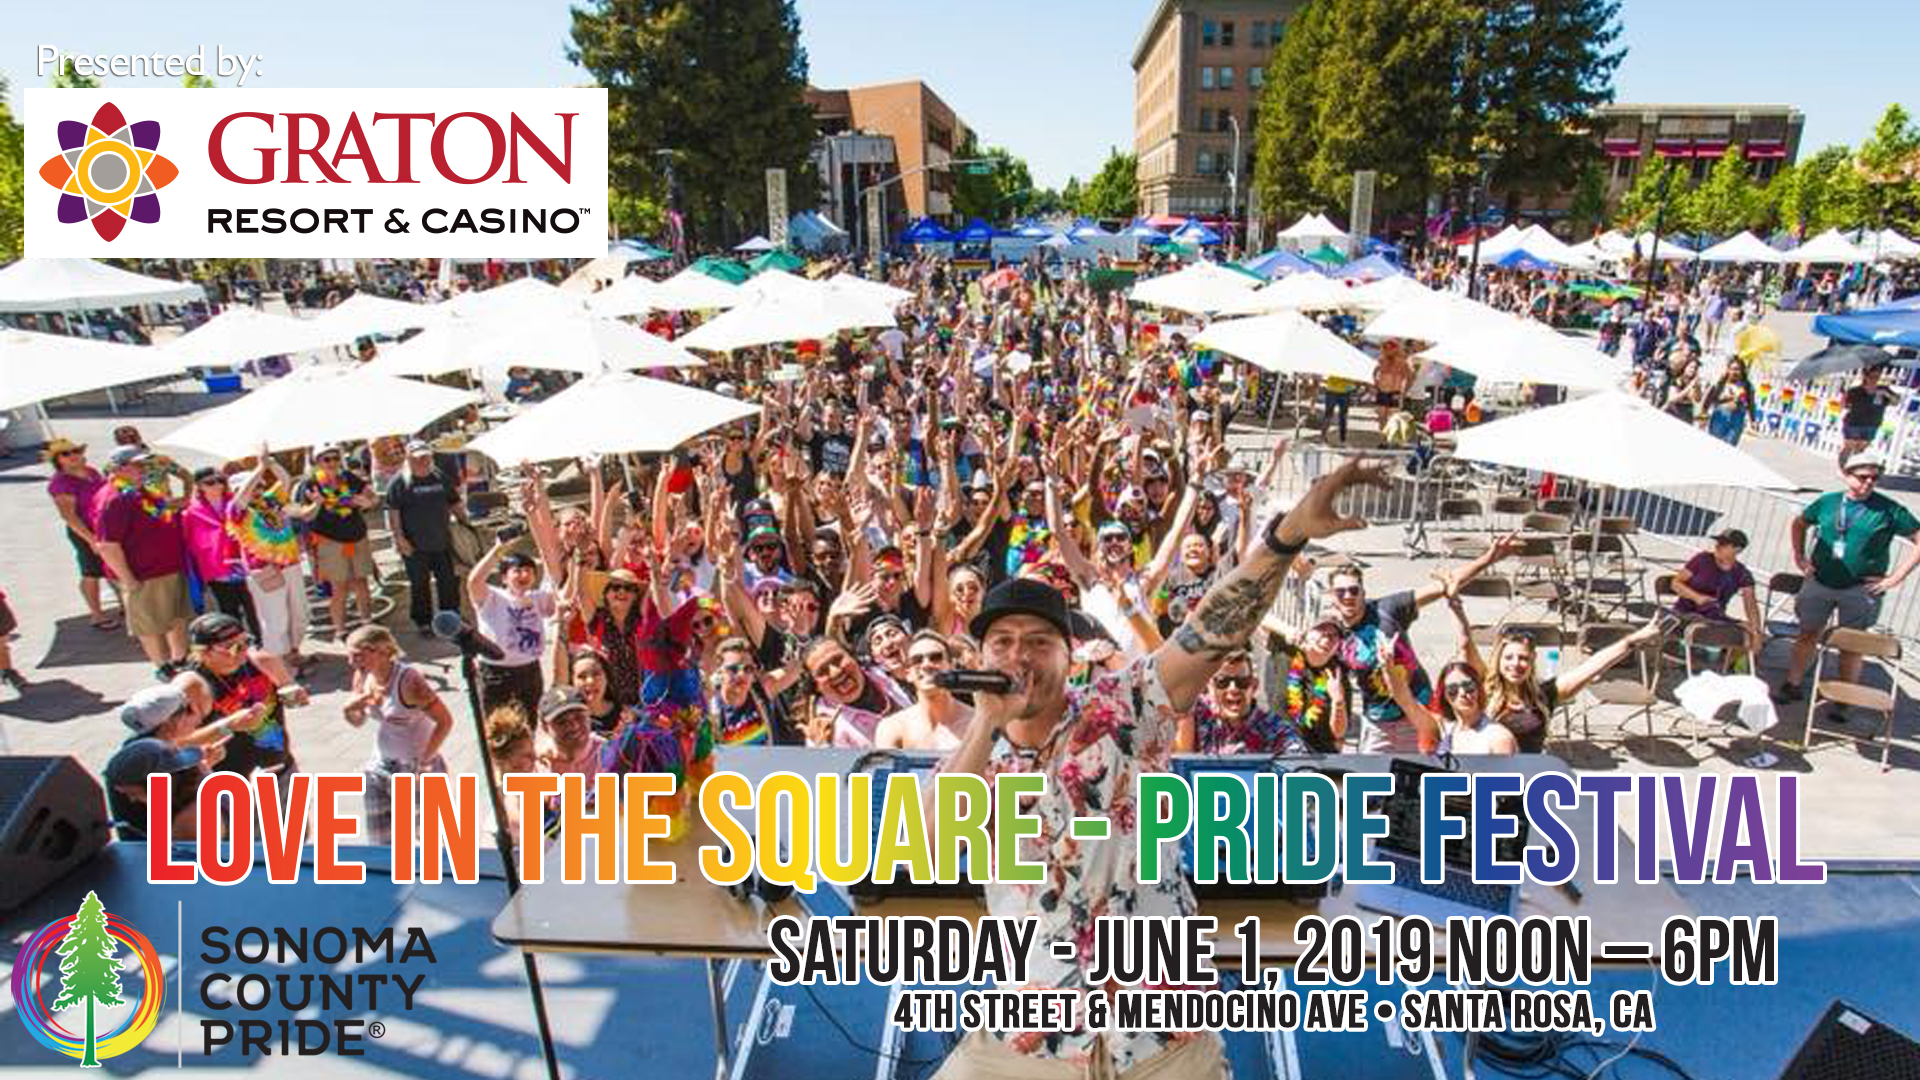 Love In The Square - Pride Festival